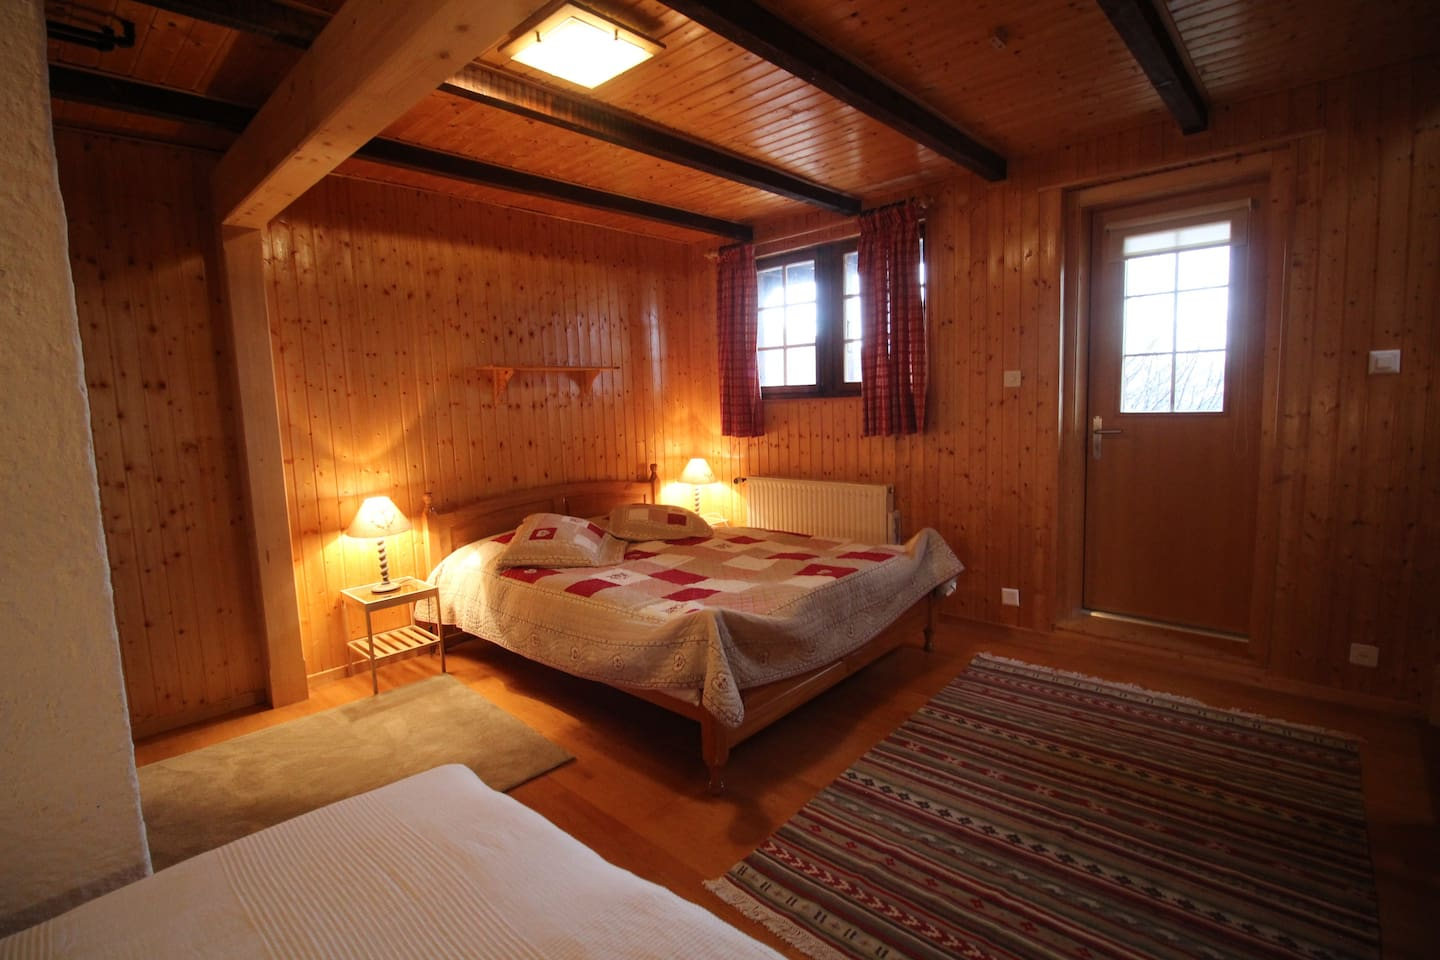 Chalet Arella_3 chambres_8 personnes